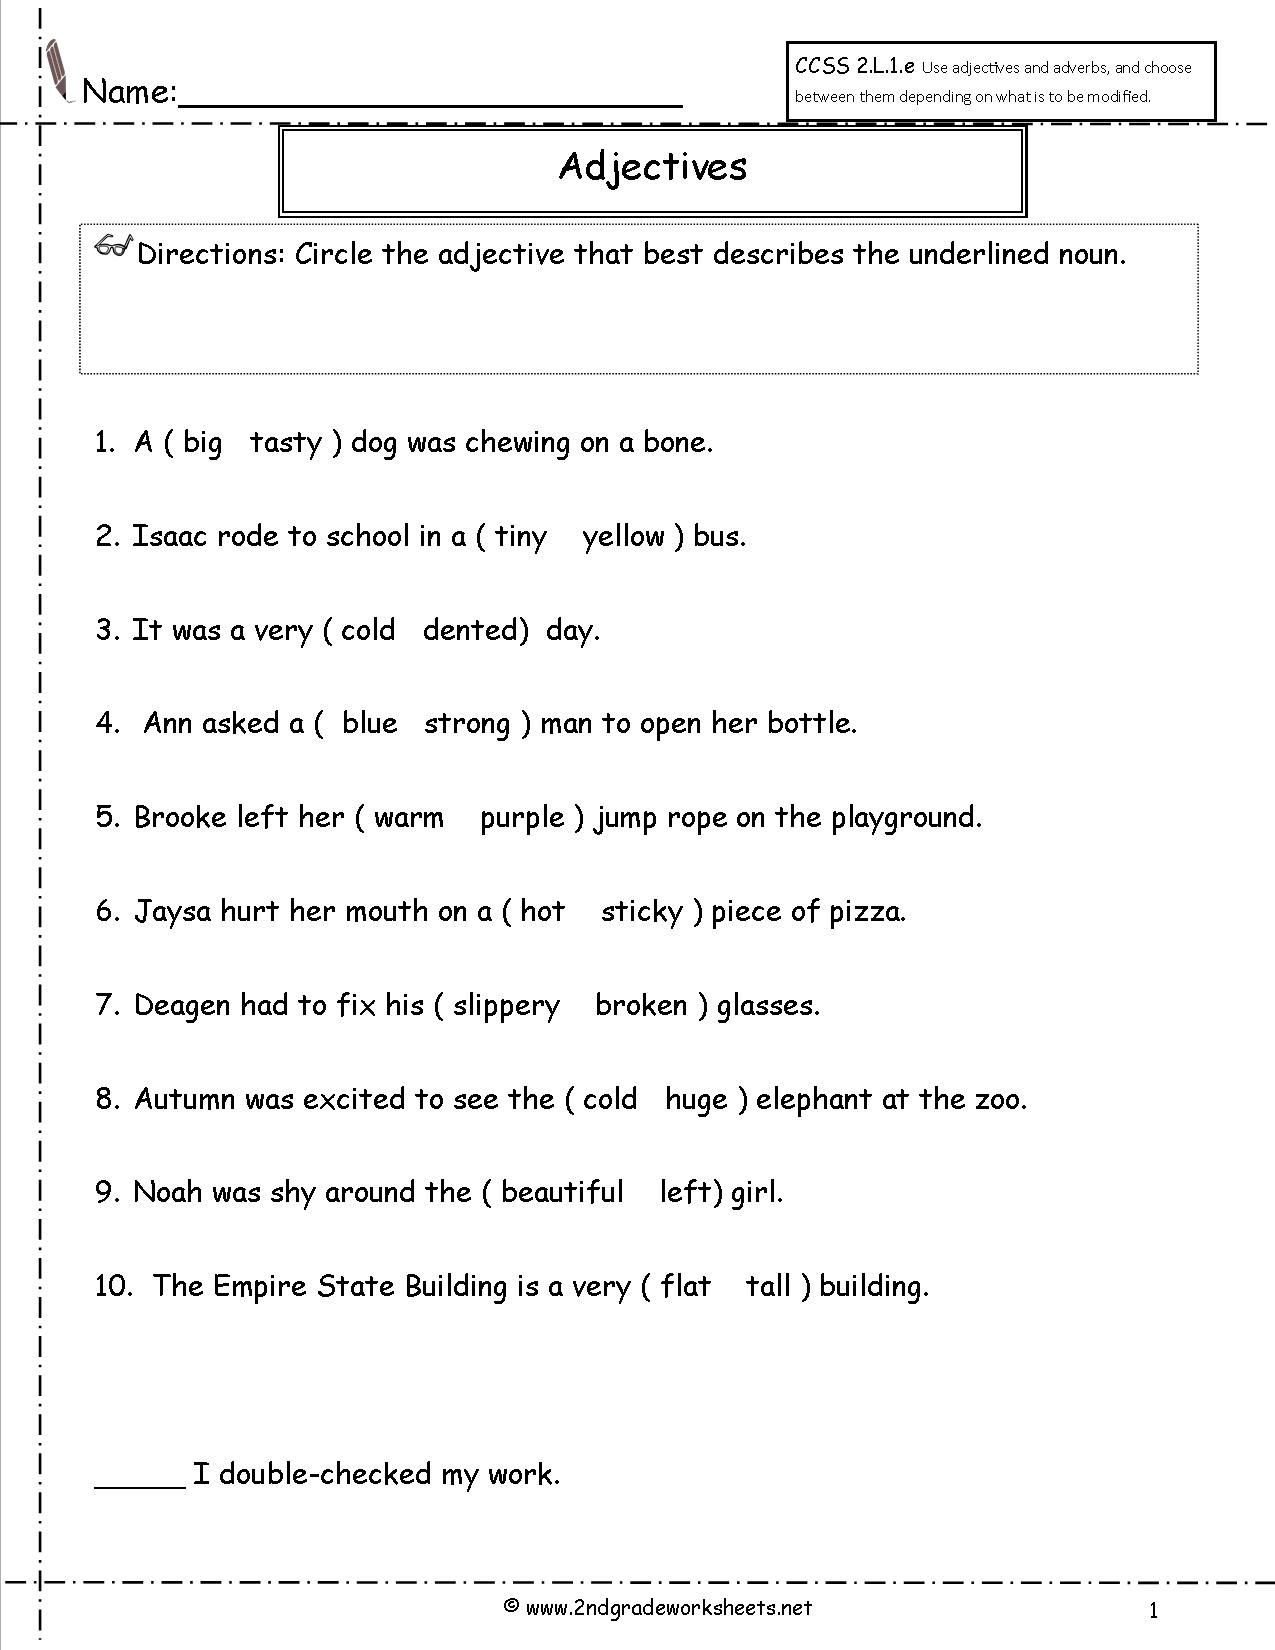 Adjectives Worksheet 2nd Grade Adjectives Worksheet